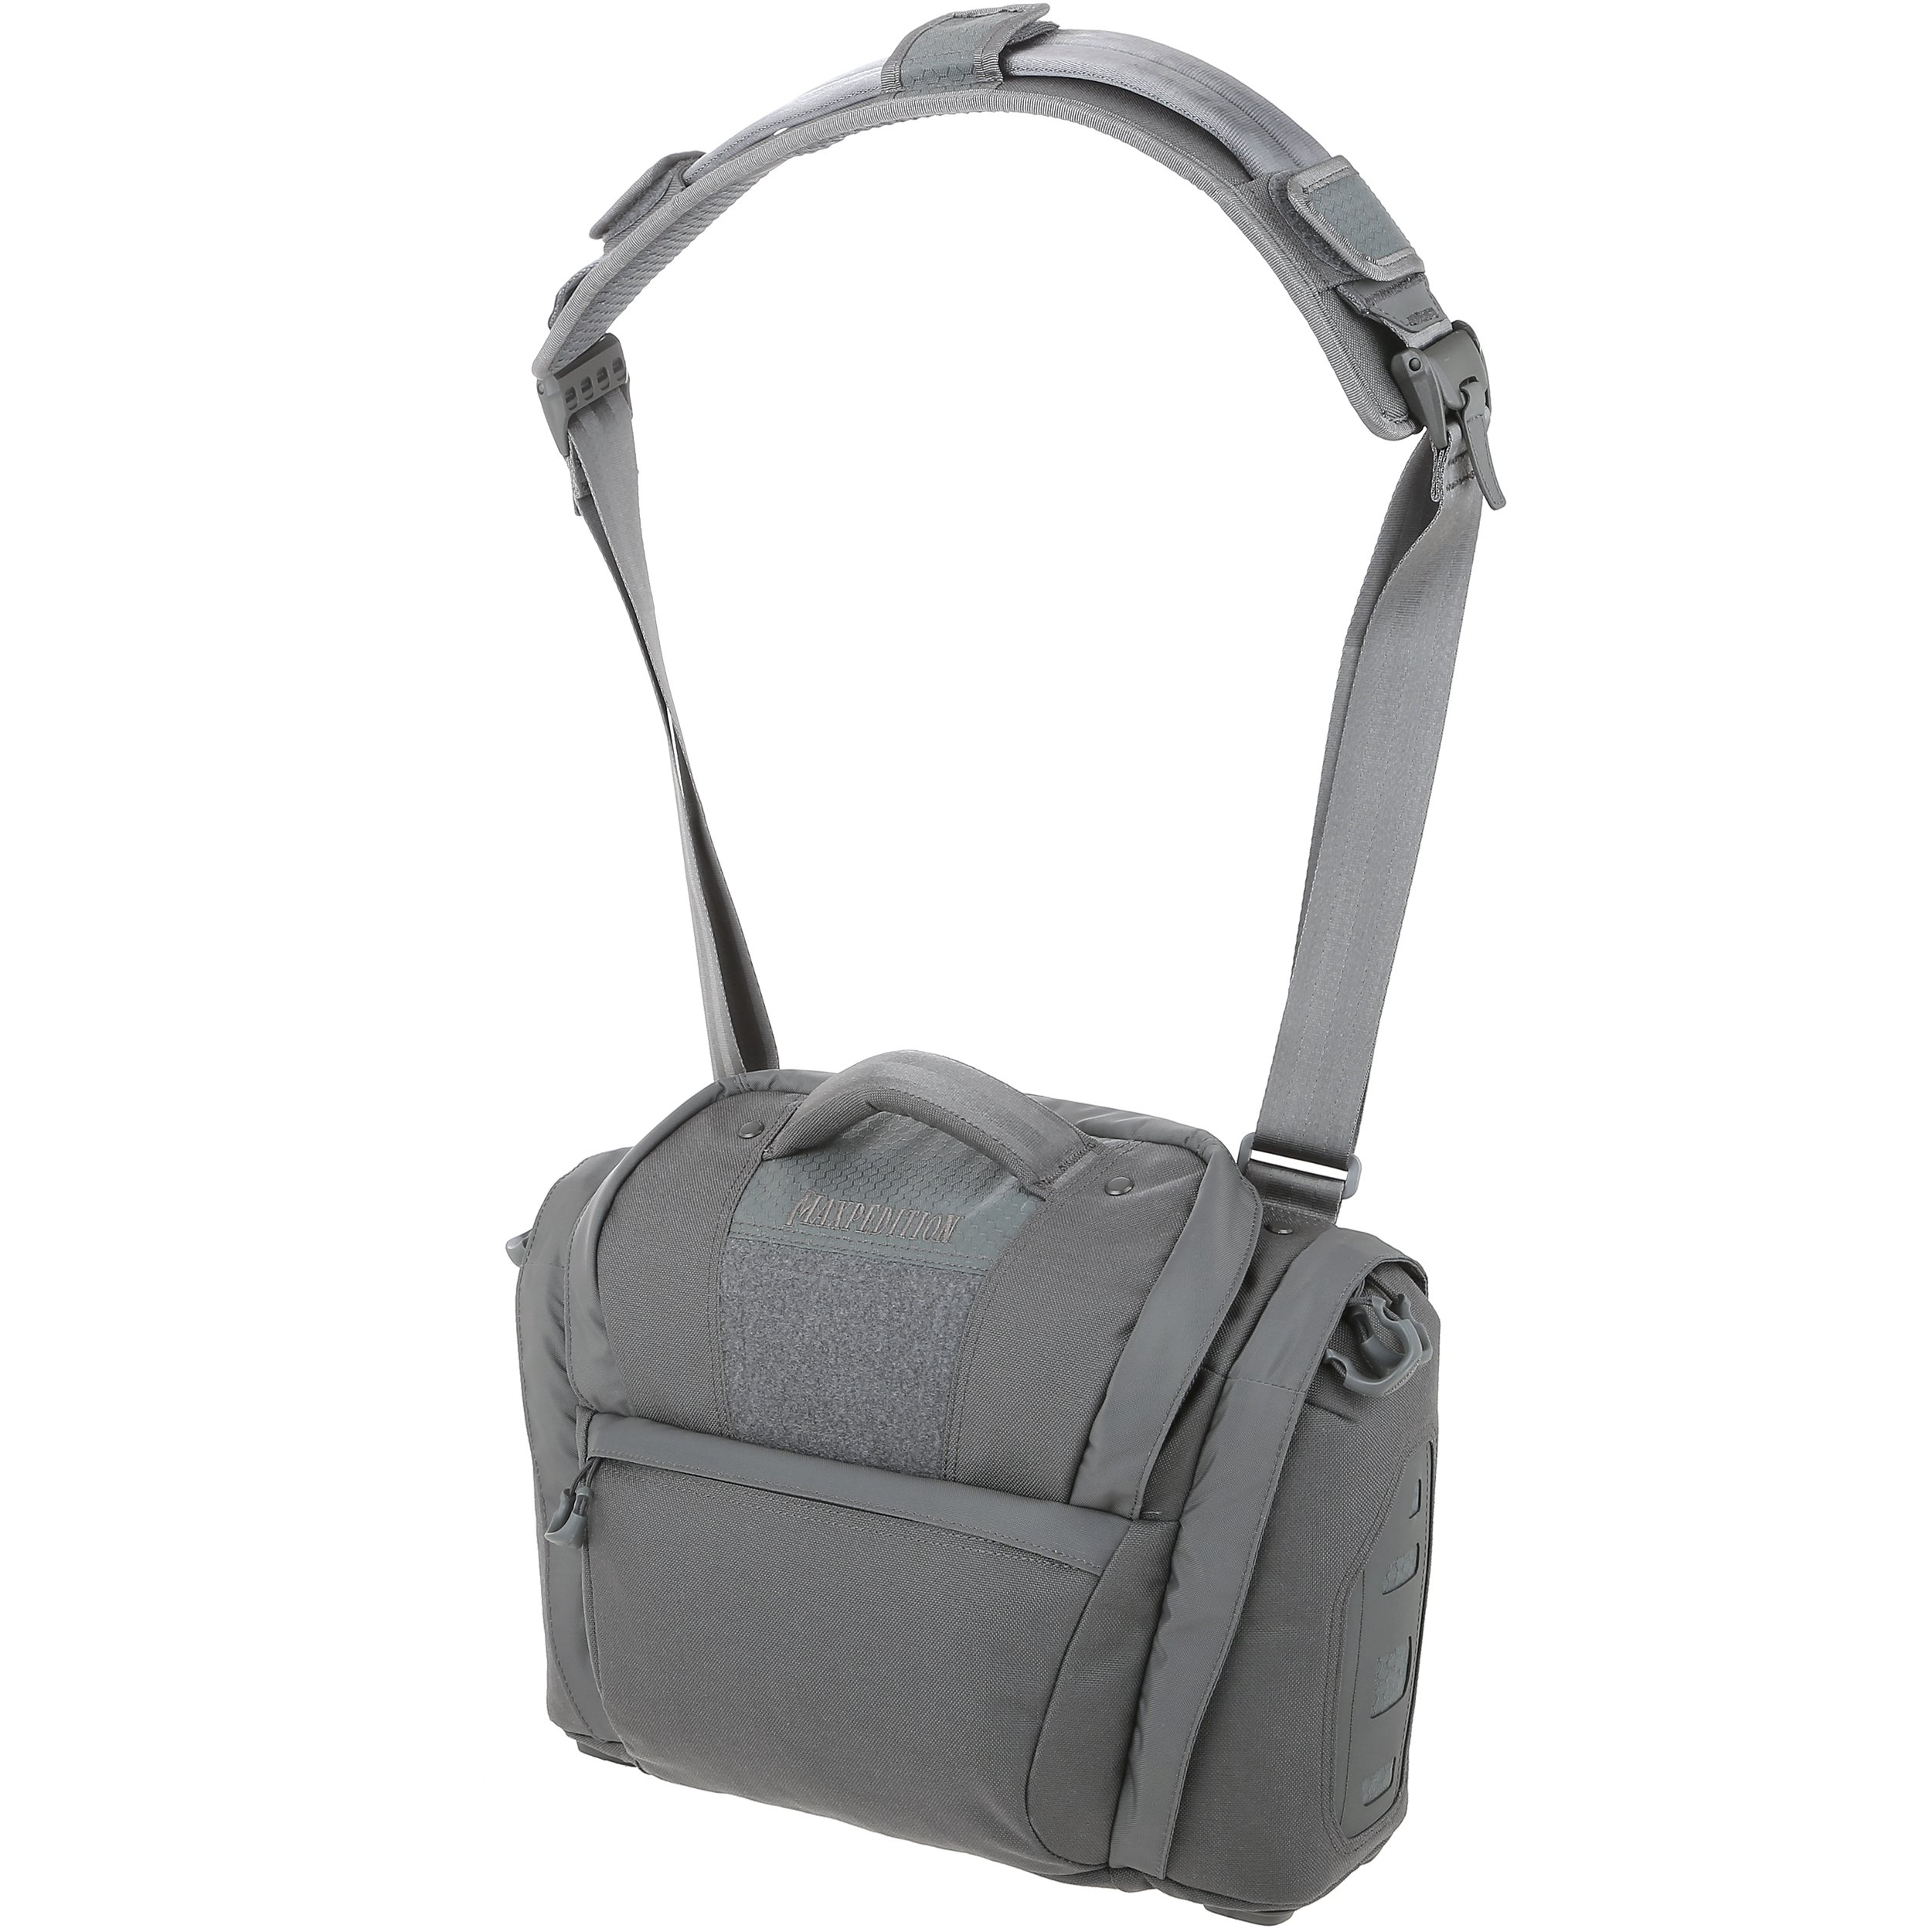 Maxpedition solstice Camera Shoulder Bag 13.5 L Solstice Camera Shoulder Bag 13.5 L(Gray), Gray